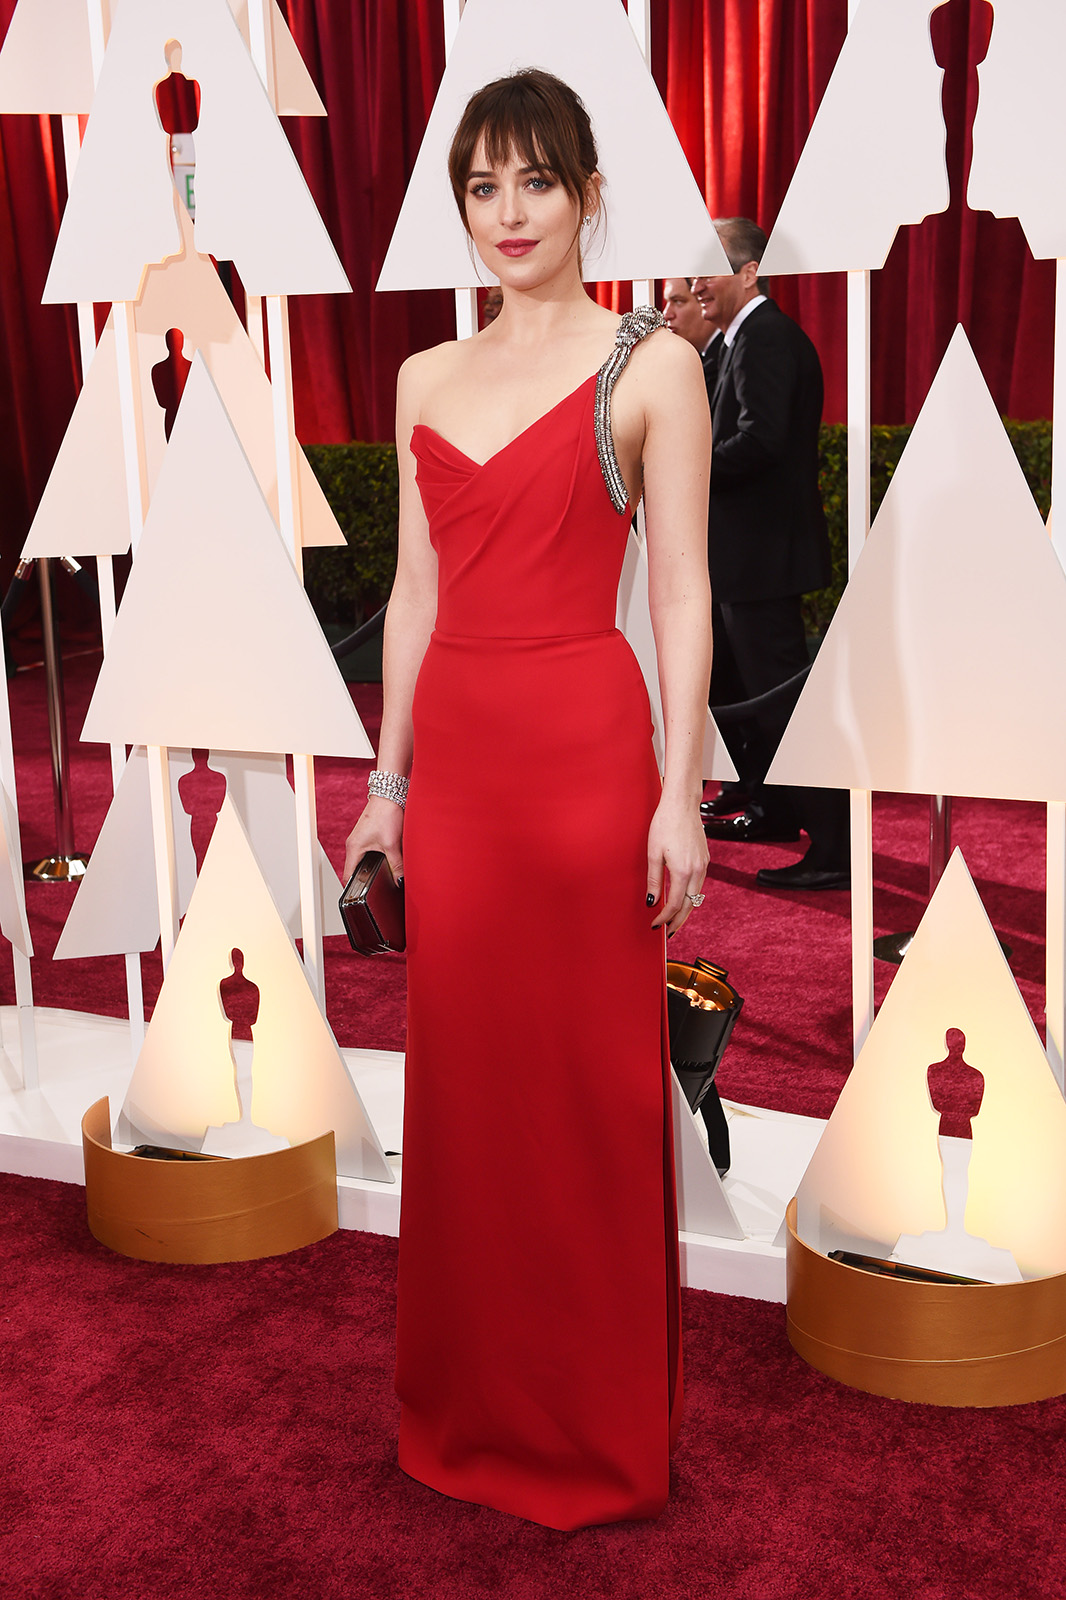 Dakota Johnson at the 2015 Oscars. Learn how to get her look for less on www.brokeandchic.com